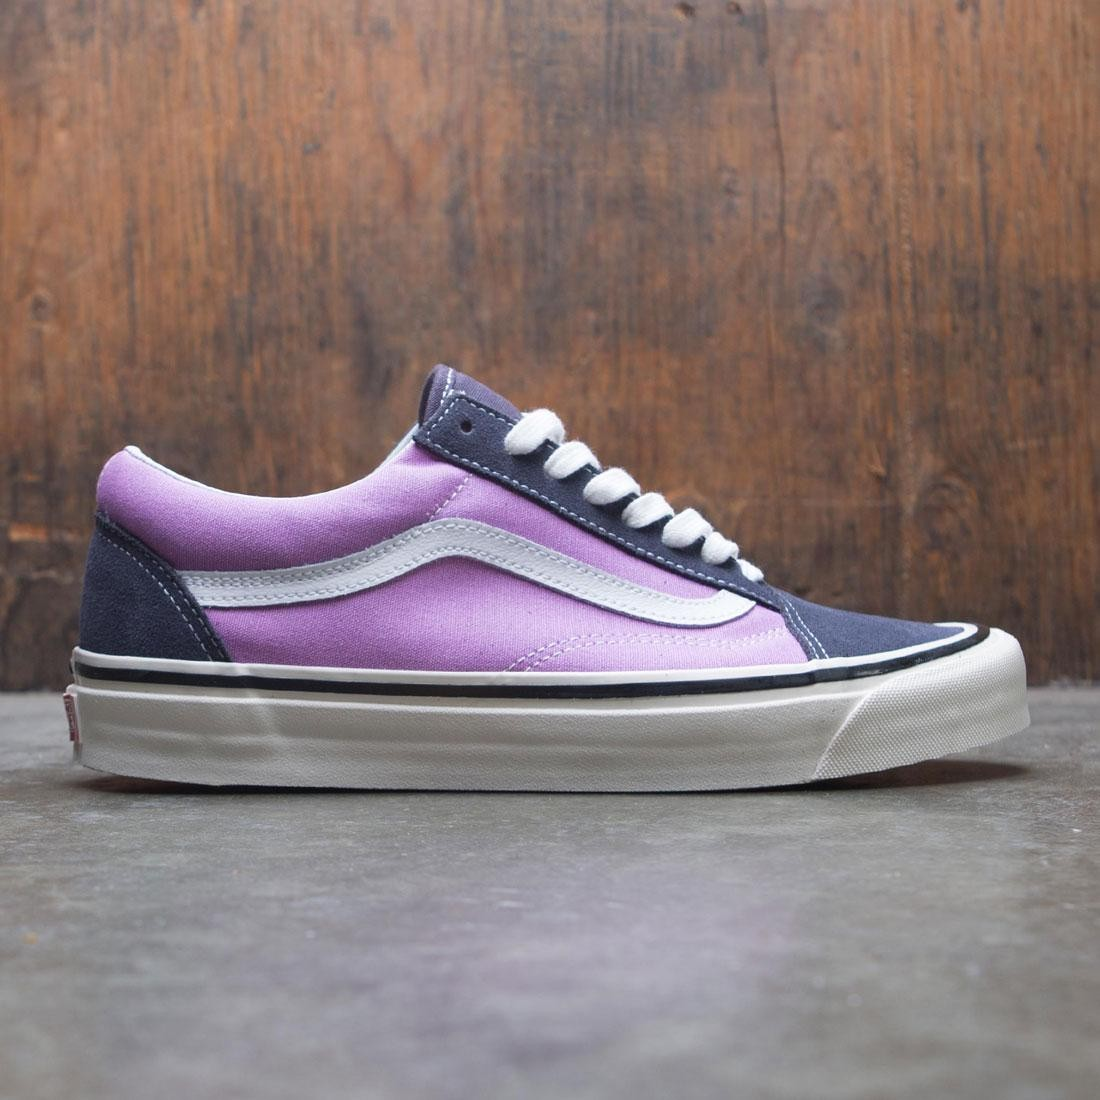 6db4afb76879 Vans Men Old Skool DX - Anaheim Factory pink black